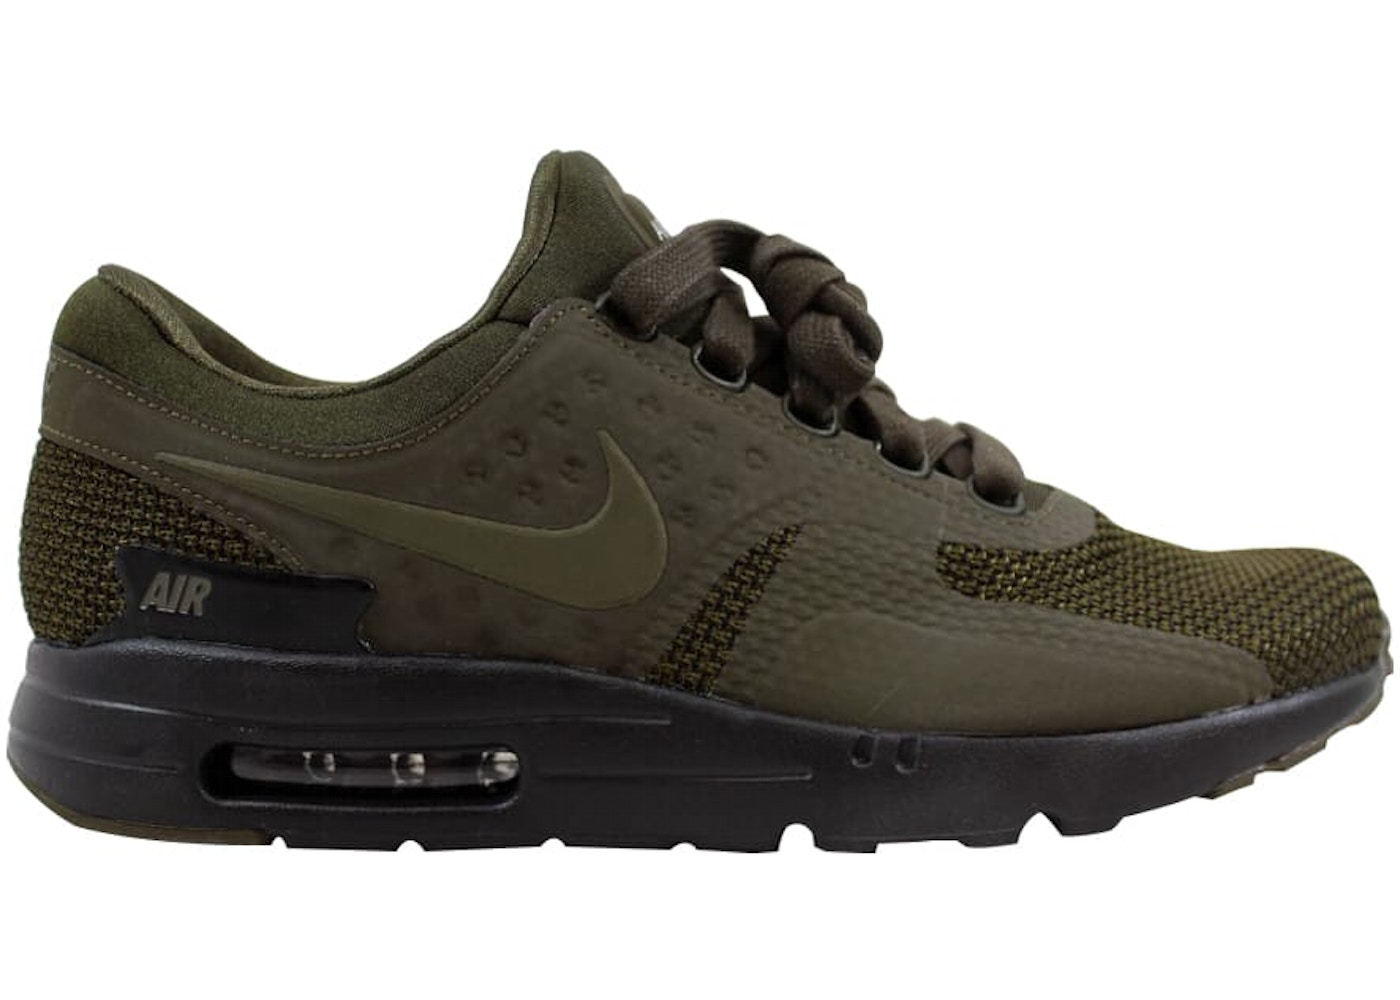 6d57b8d2cbe Sell. or Ask. Size  10.5. View All Bids. Nike Air Max Zero Premium Dark  Loden Dark Loden